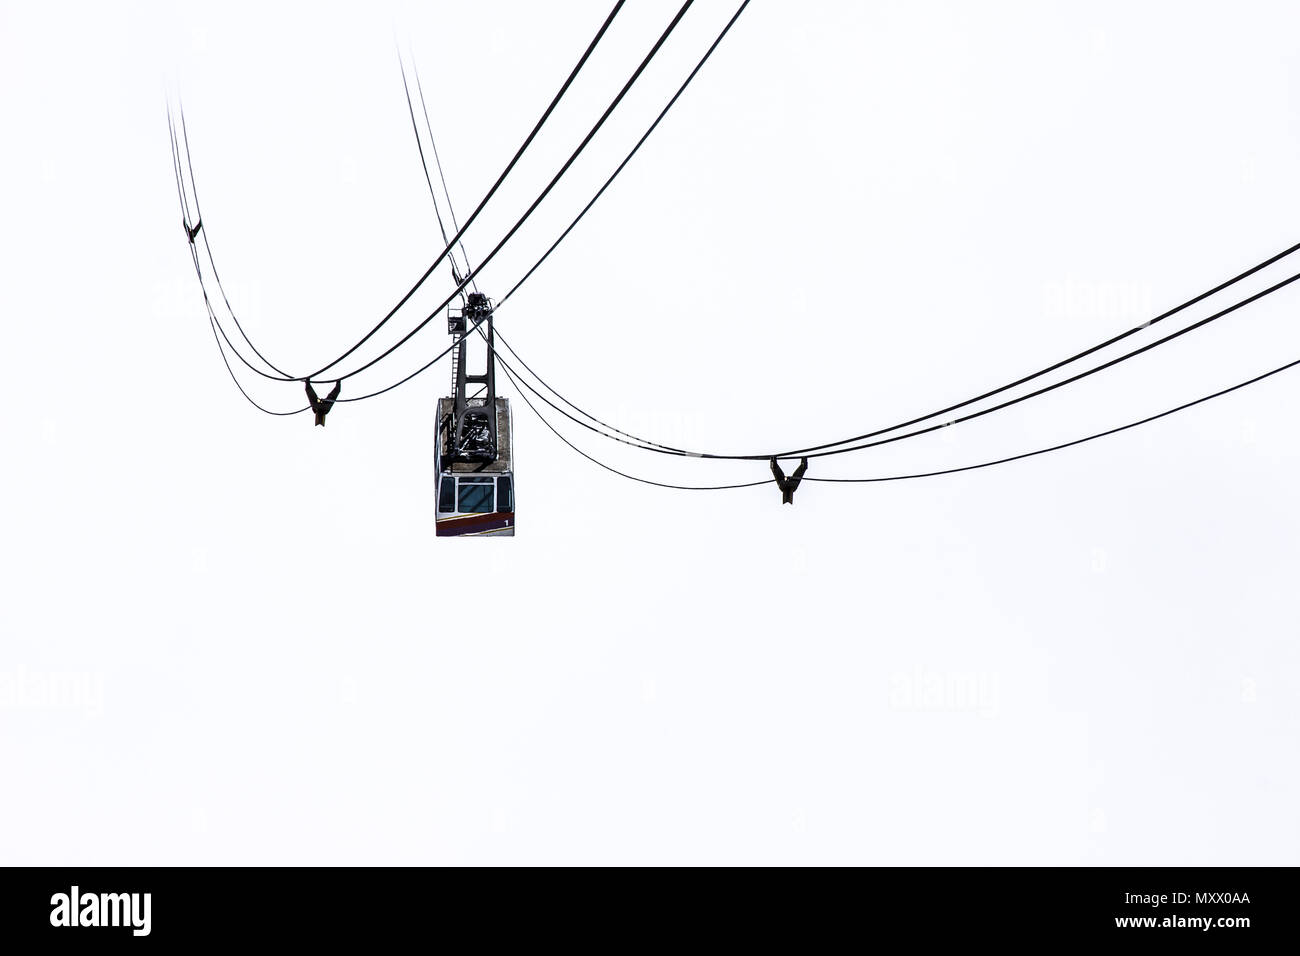 Cable car isolated on white background in foggy mountains - Stock Image